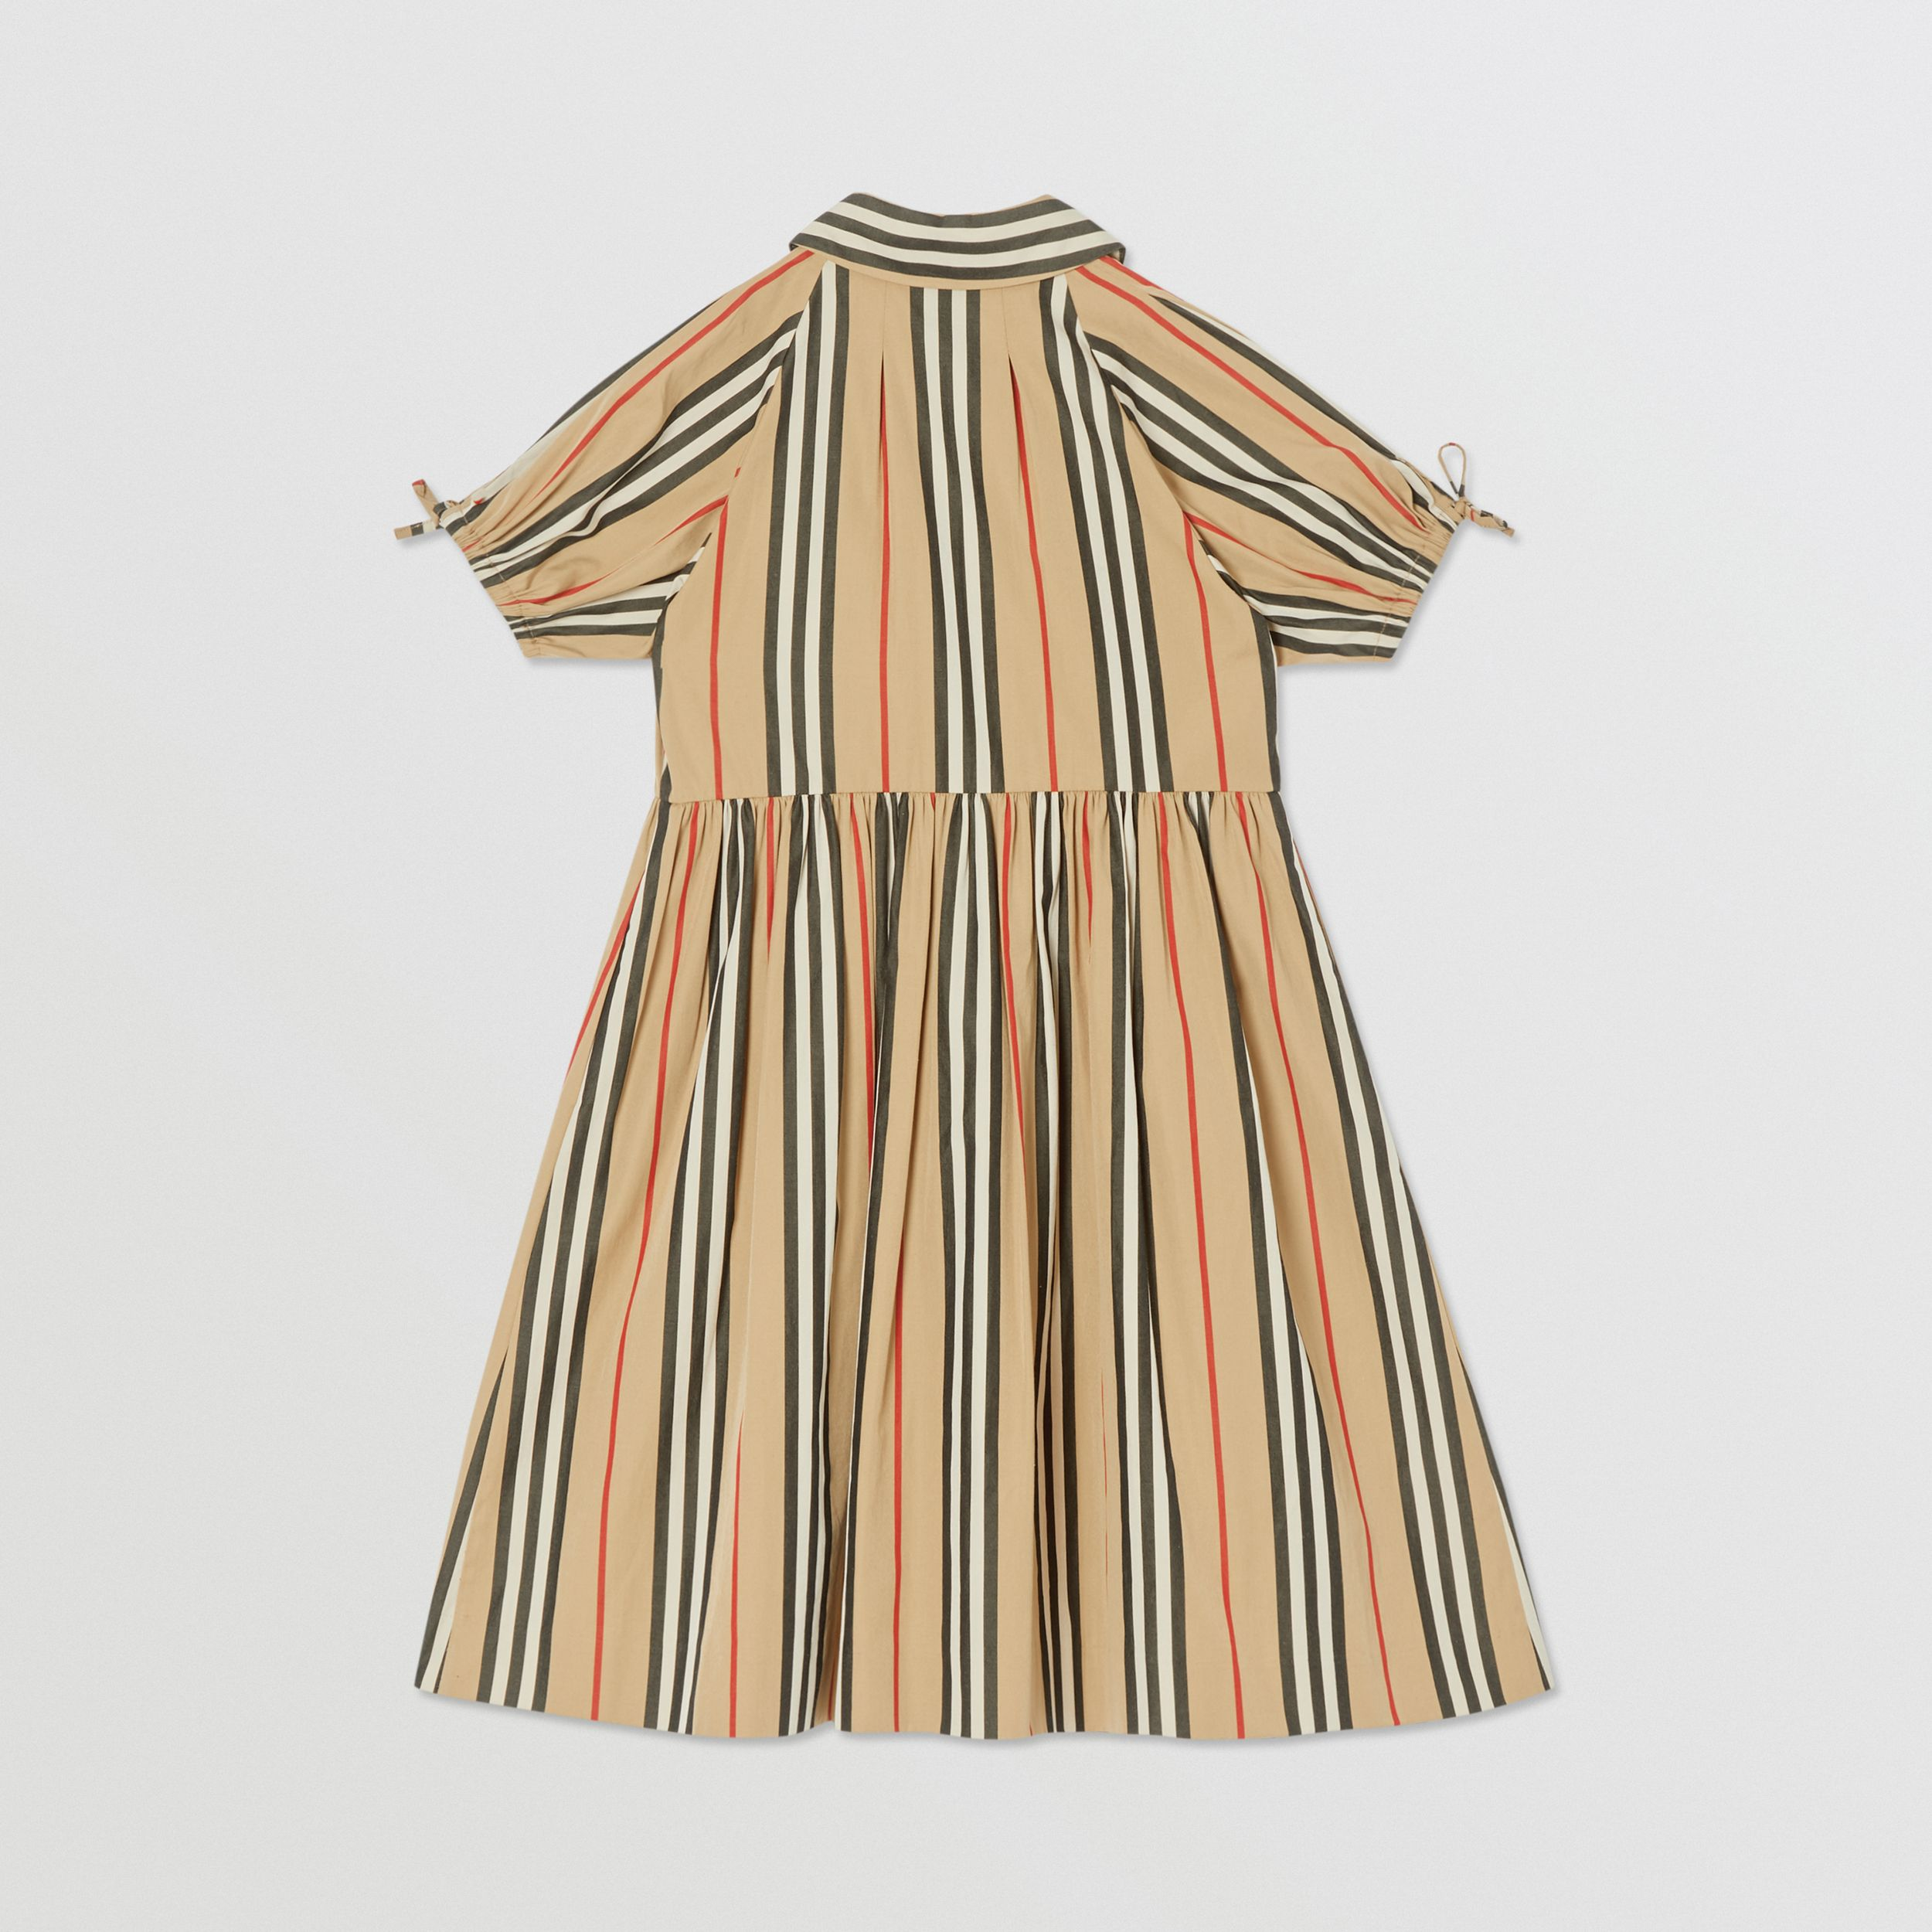 Icon Stripe Cotton Poplin Dress in Archive Beige | Burberry - 4